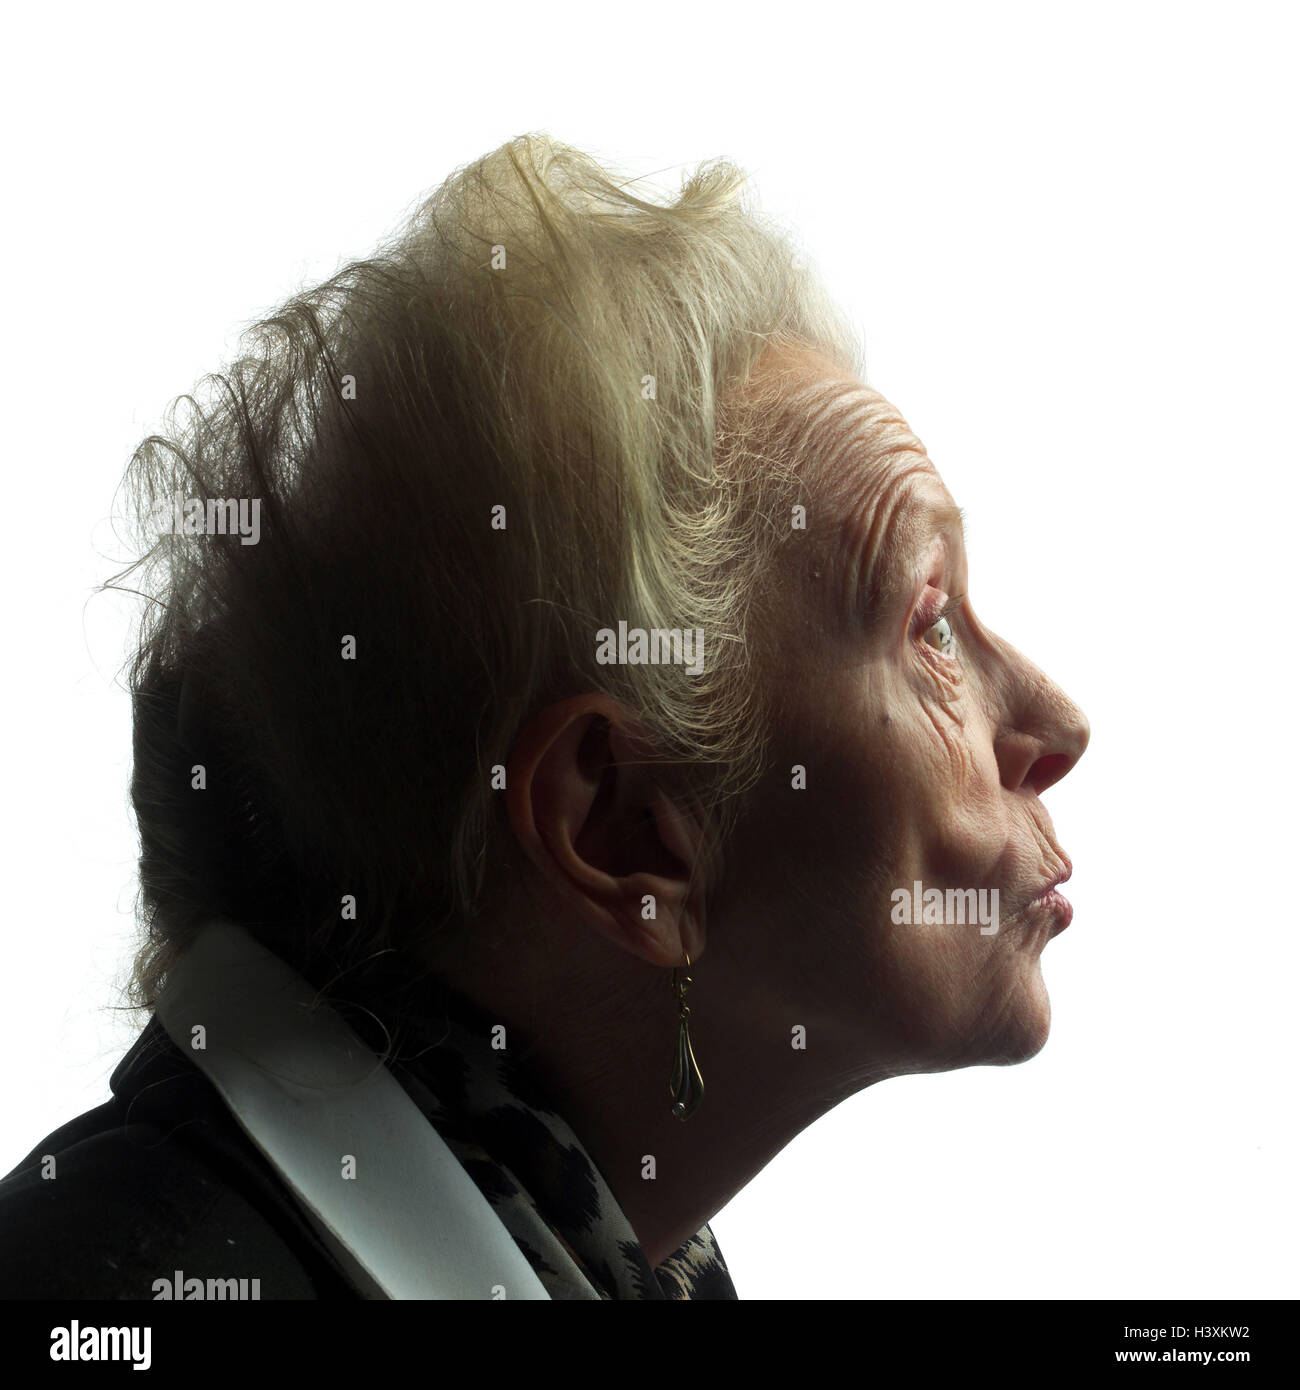 Senior, annoys, tread, model released, studio, cut out, pensioner, woman, old, old age, look, shell, creased, folds, Stock Photo